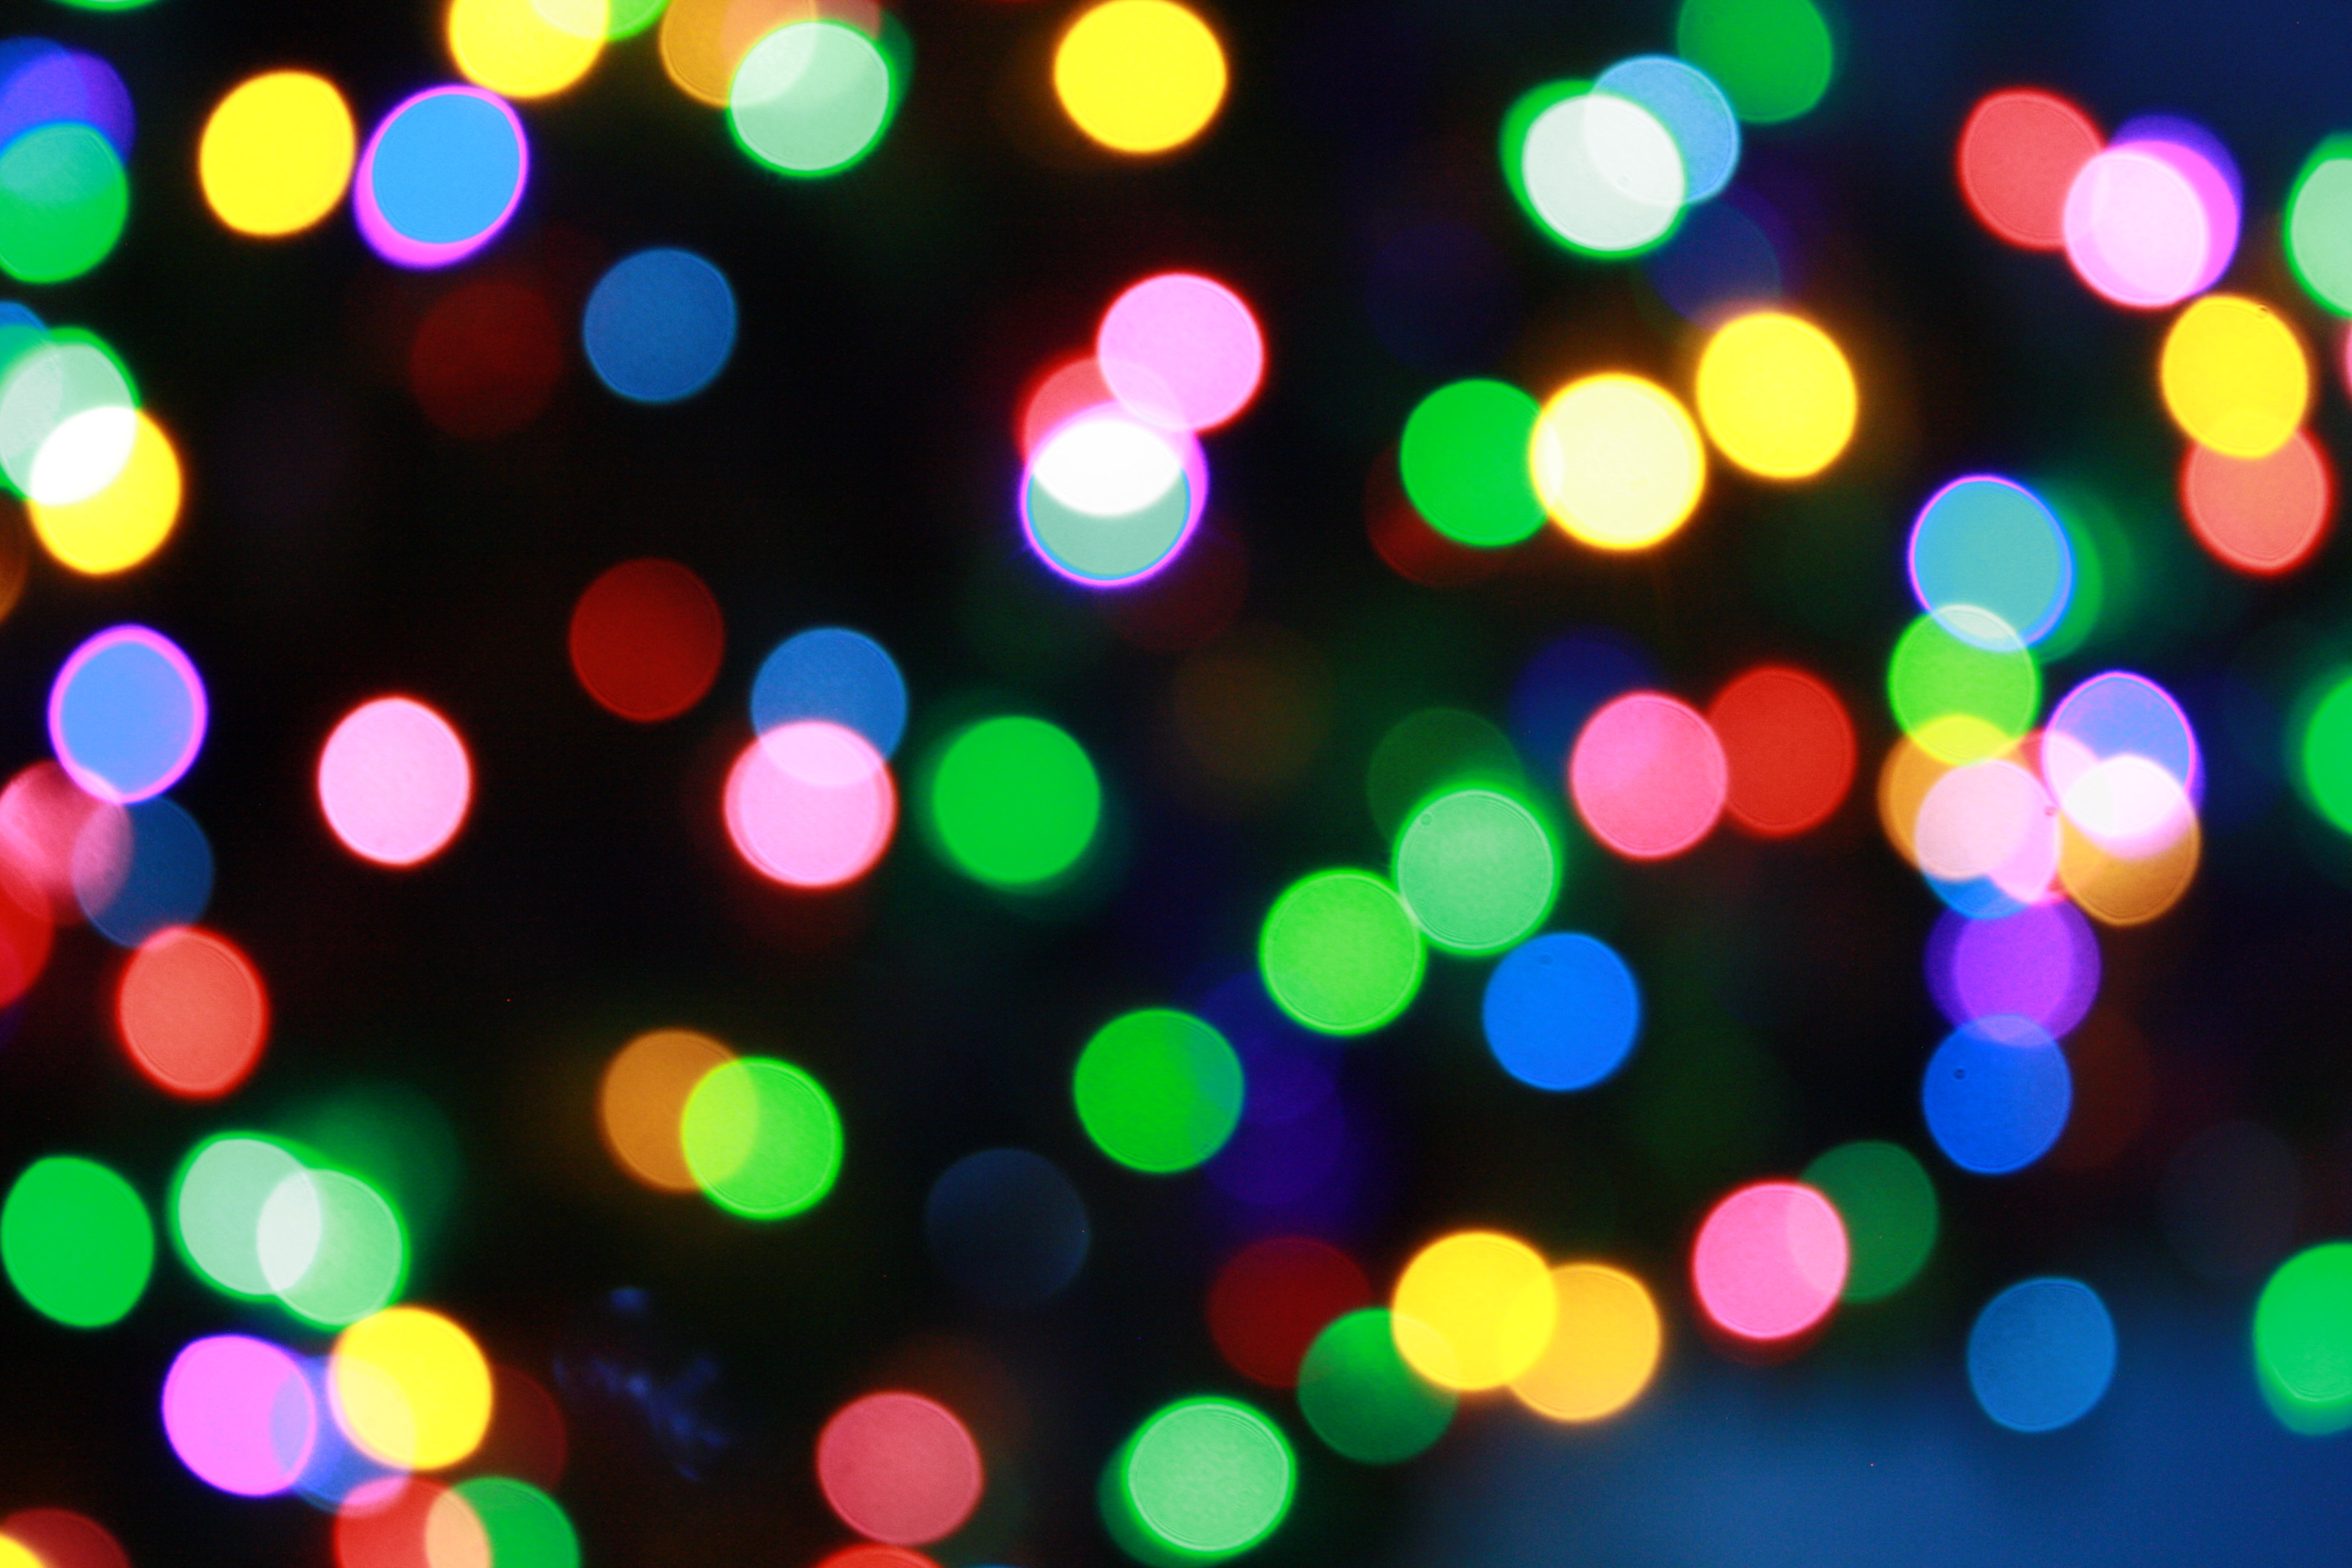 Blurred Christmas Lights Picture | Free Photograph ...